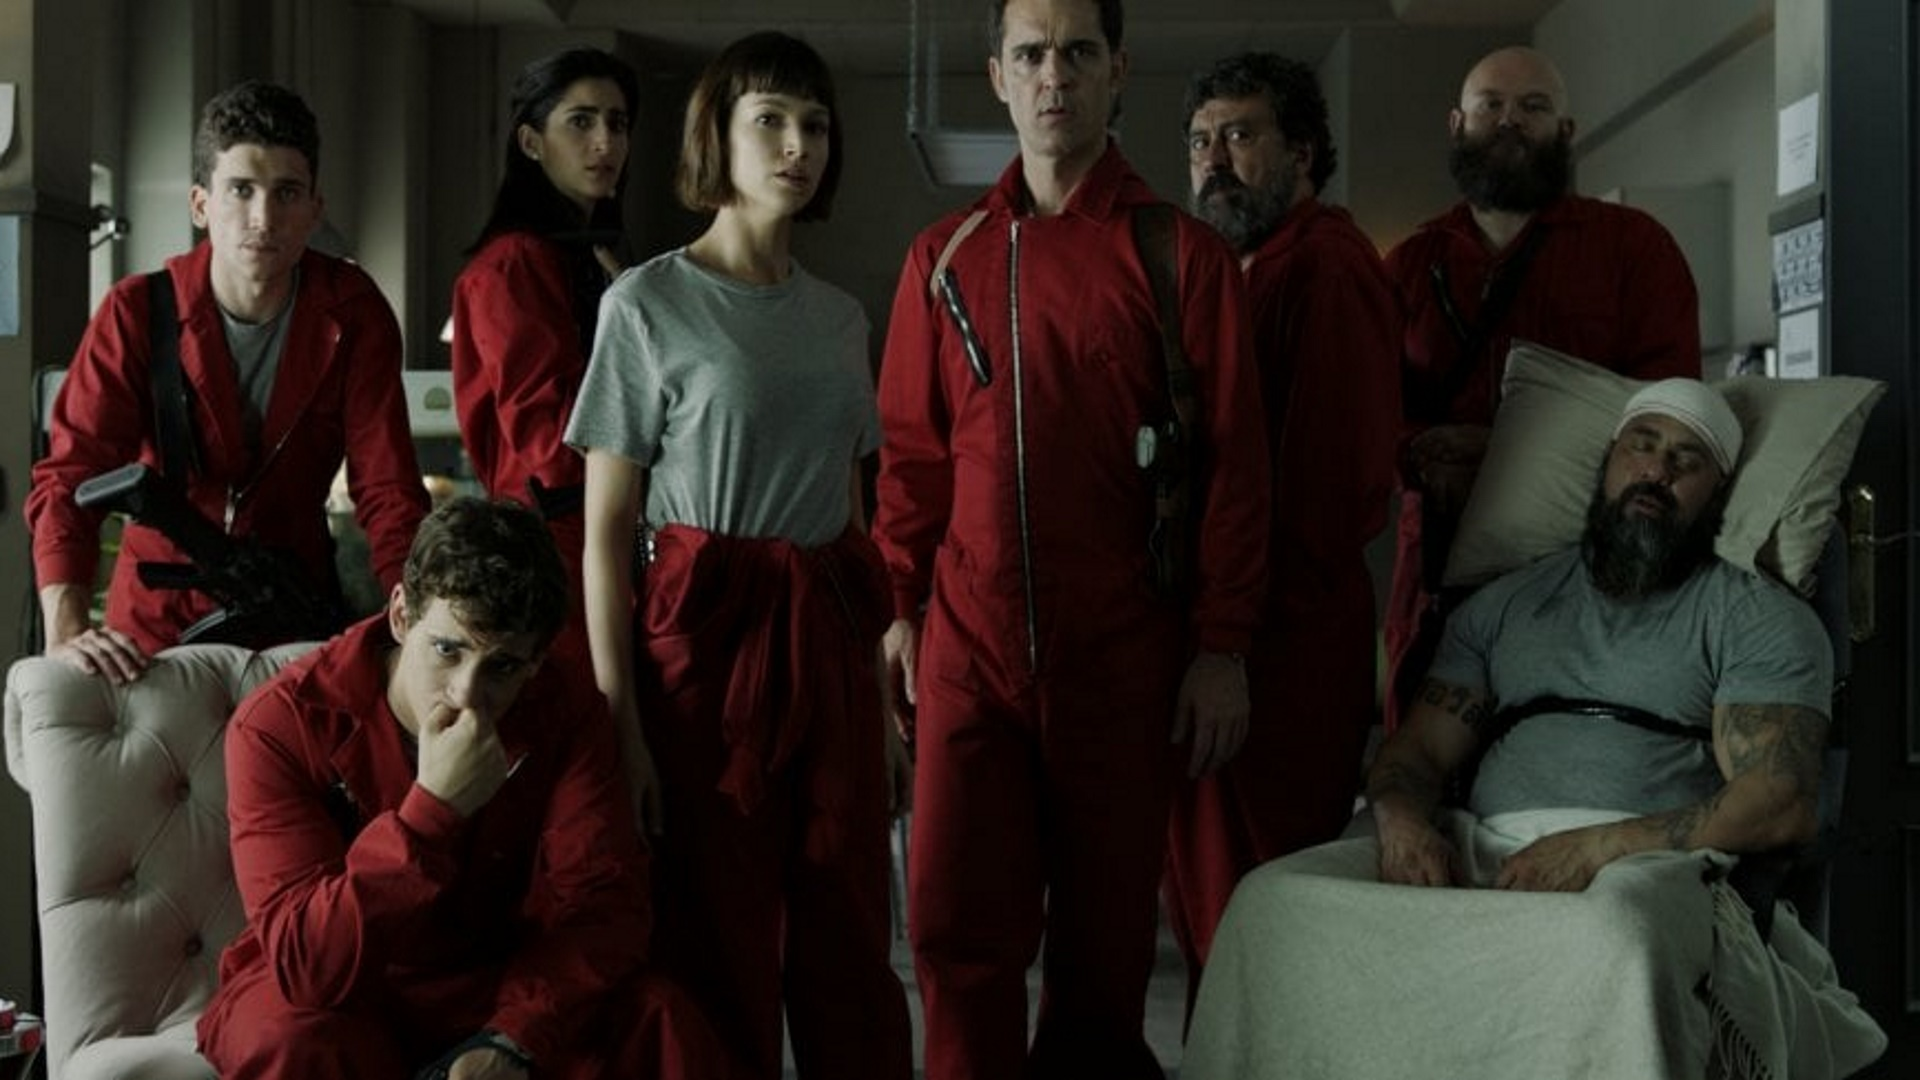 Money Heist (La casa de papel) - Season 1 [Sub: Eng] - Newest TV